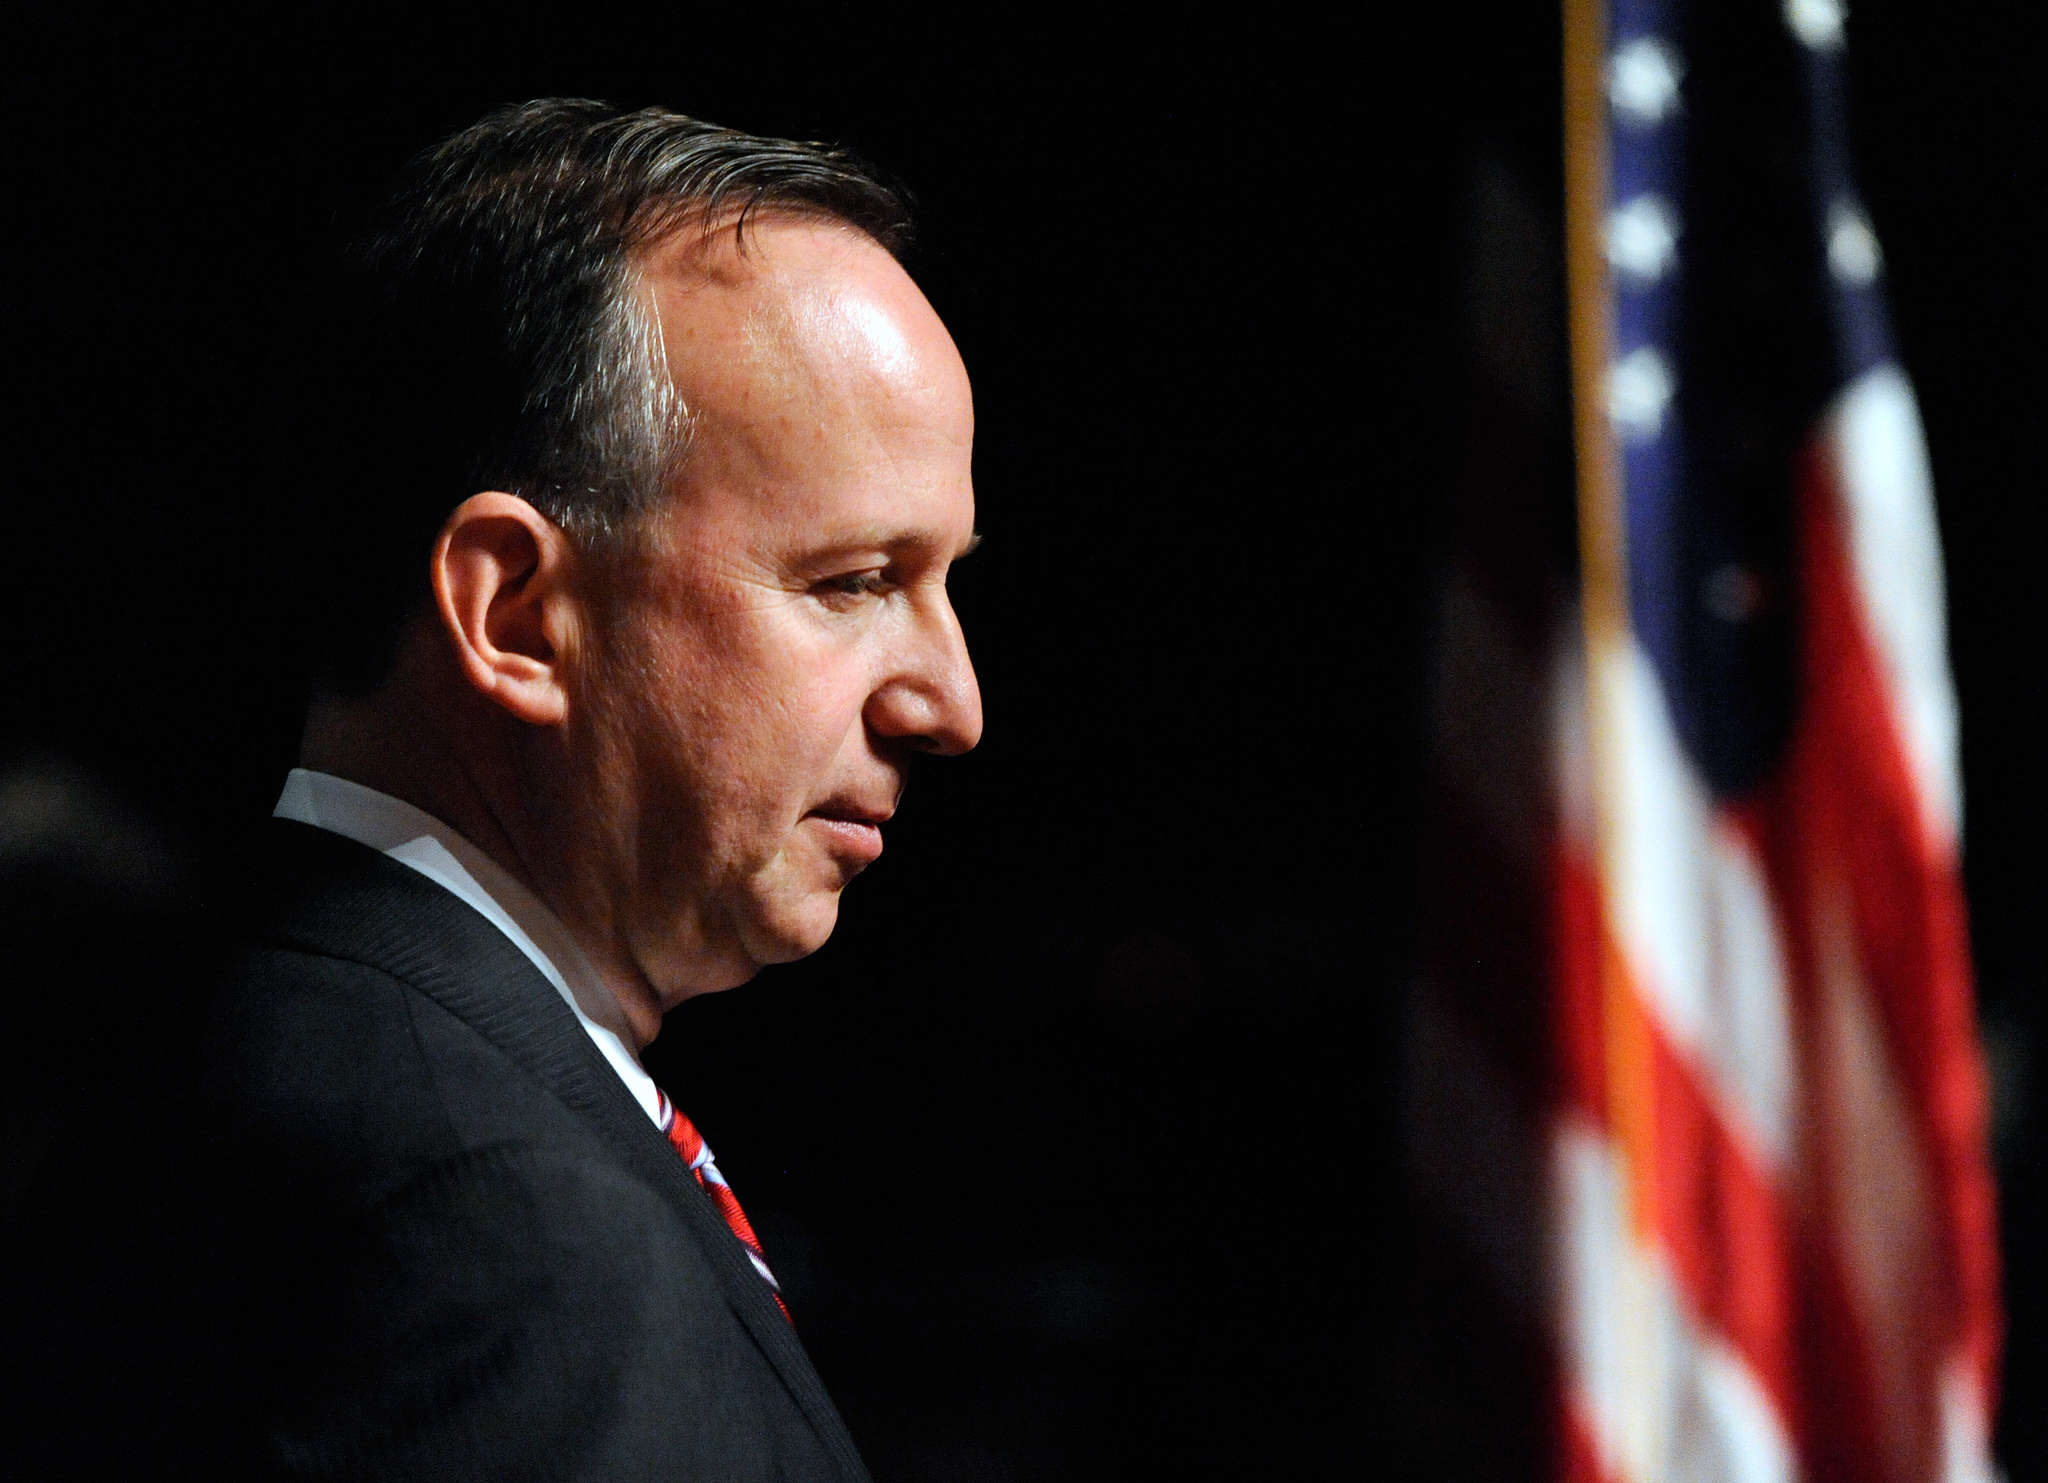 Gov. Jack Markell , who leaves office in Janurary, says he´s preparing a tough final budget. STEVE RUARK / AP